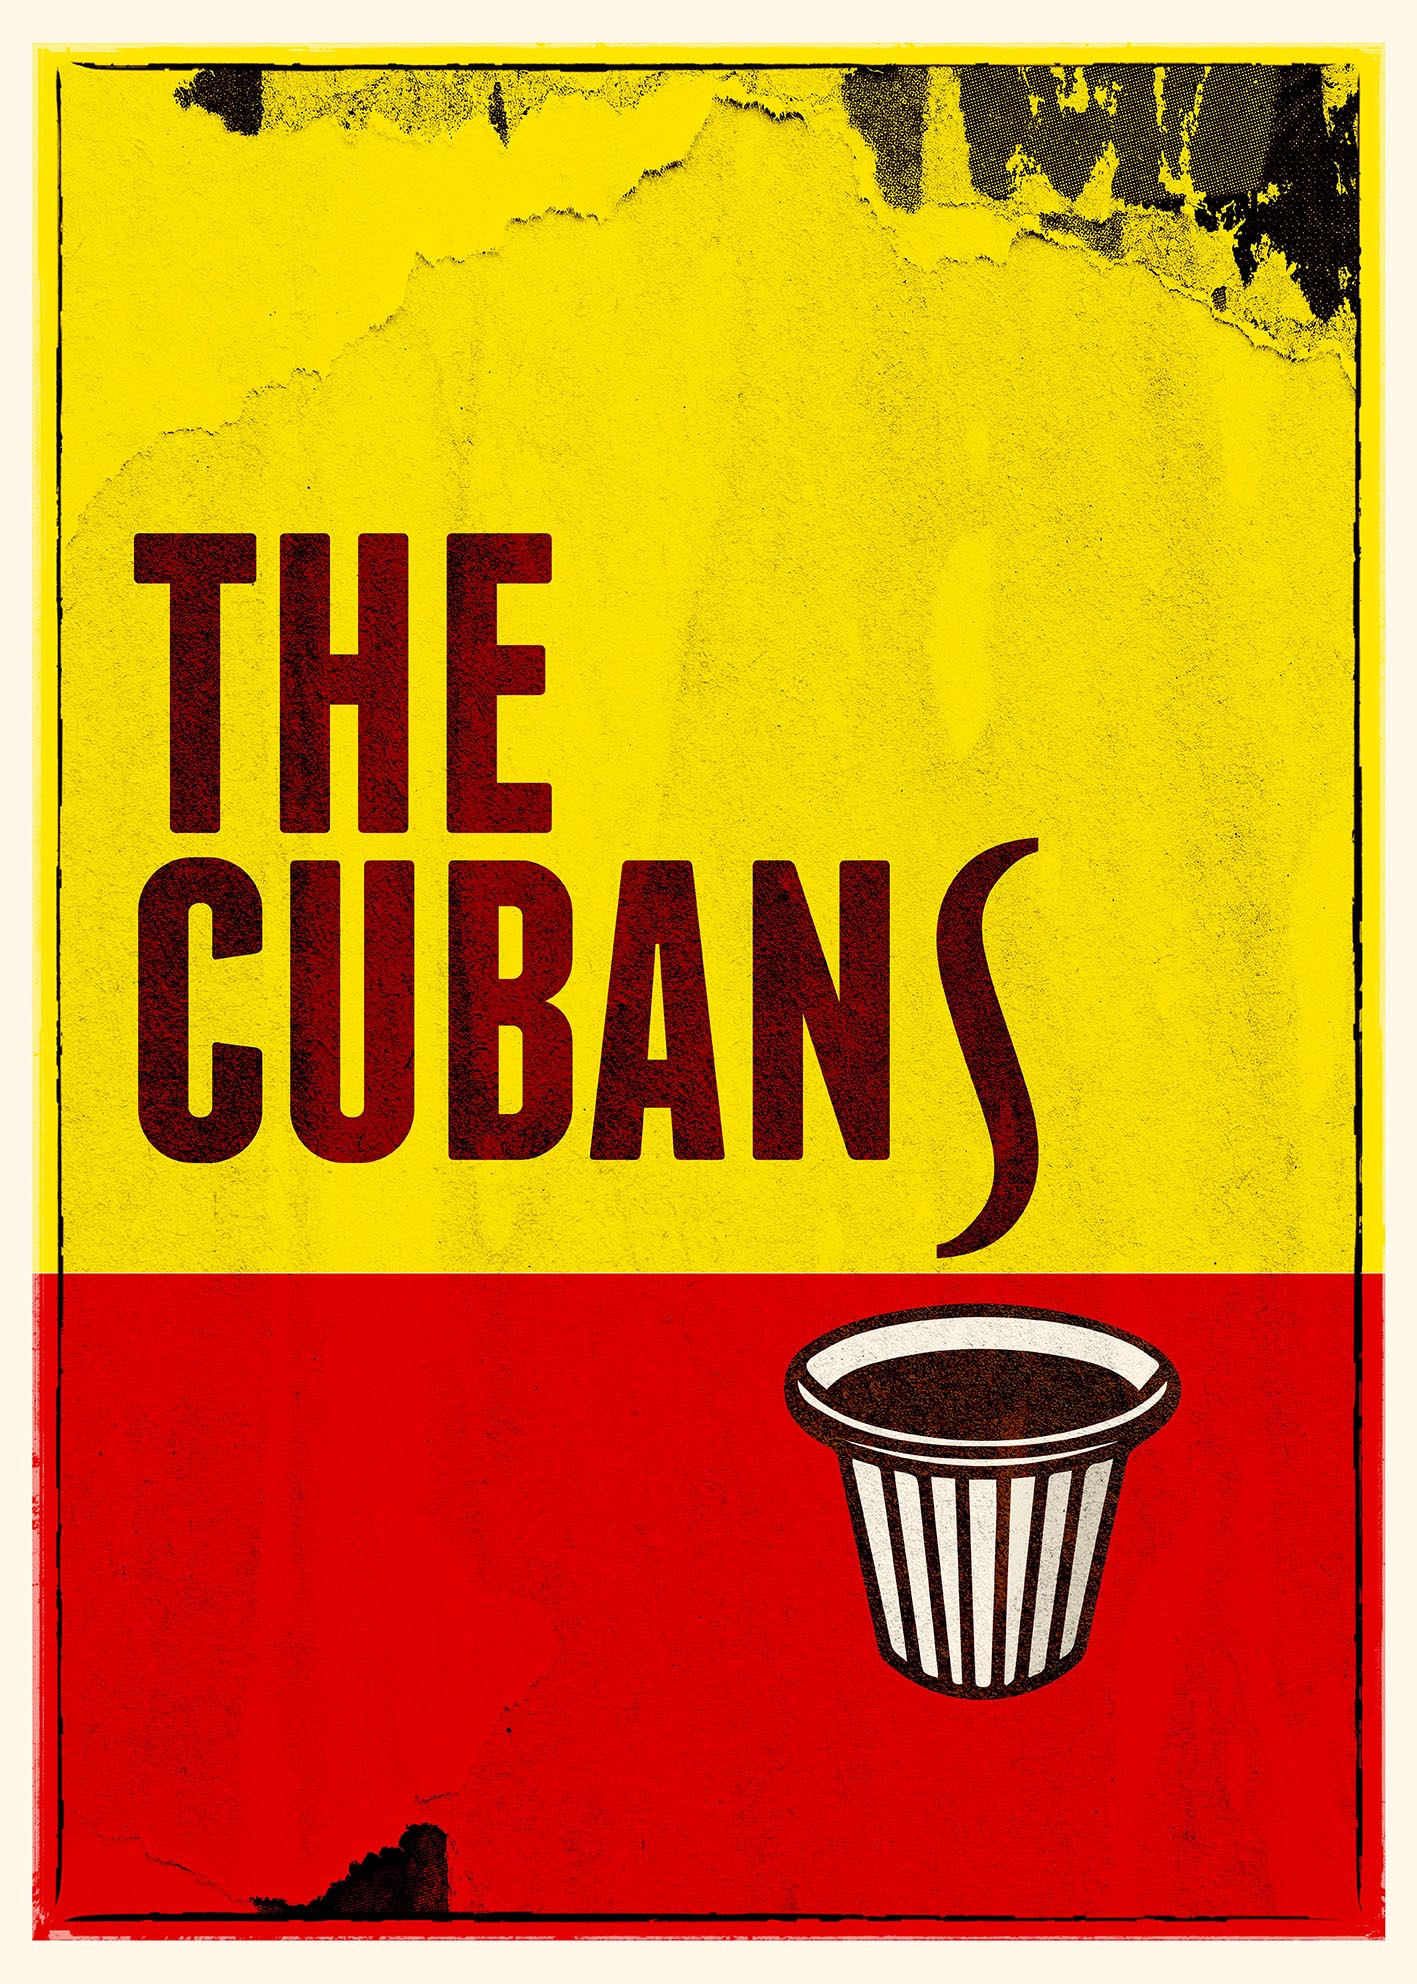 THE CUBANS      Jan 23 - Feb 16     WORLD PREMIERE   Our mission of developing and presenting new work by Miami artists continues with the debut of the first play by Cuban-American playwright and actor Michael Leon.  The Cubans  turns the classic American family drama into a quintessential Miami story – a poignant, humorous exploration of the fraught generational dynamics and struggle for identity in a Cuban-American family. When Christy returns to Miami for a family celebration, she clashes with her overbearing mother Martica over her life choices and family expectations - until a life-shattering event forces them to confront their relationship. Directed by Victoria Collado, director of the immersive hit  The Amparo Experience.